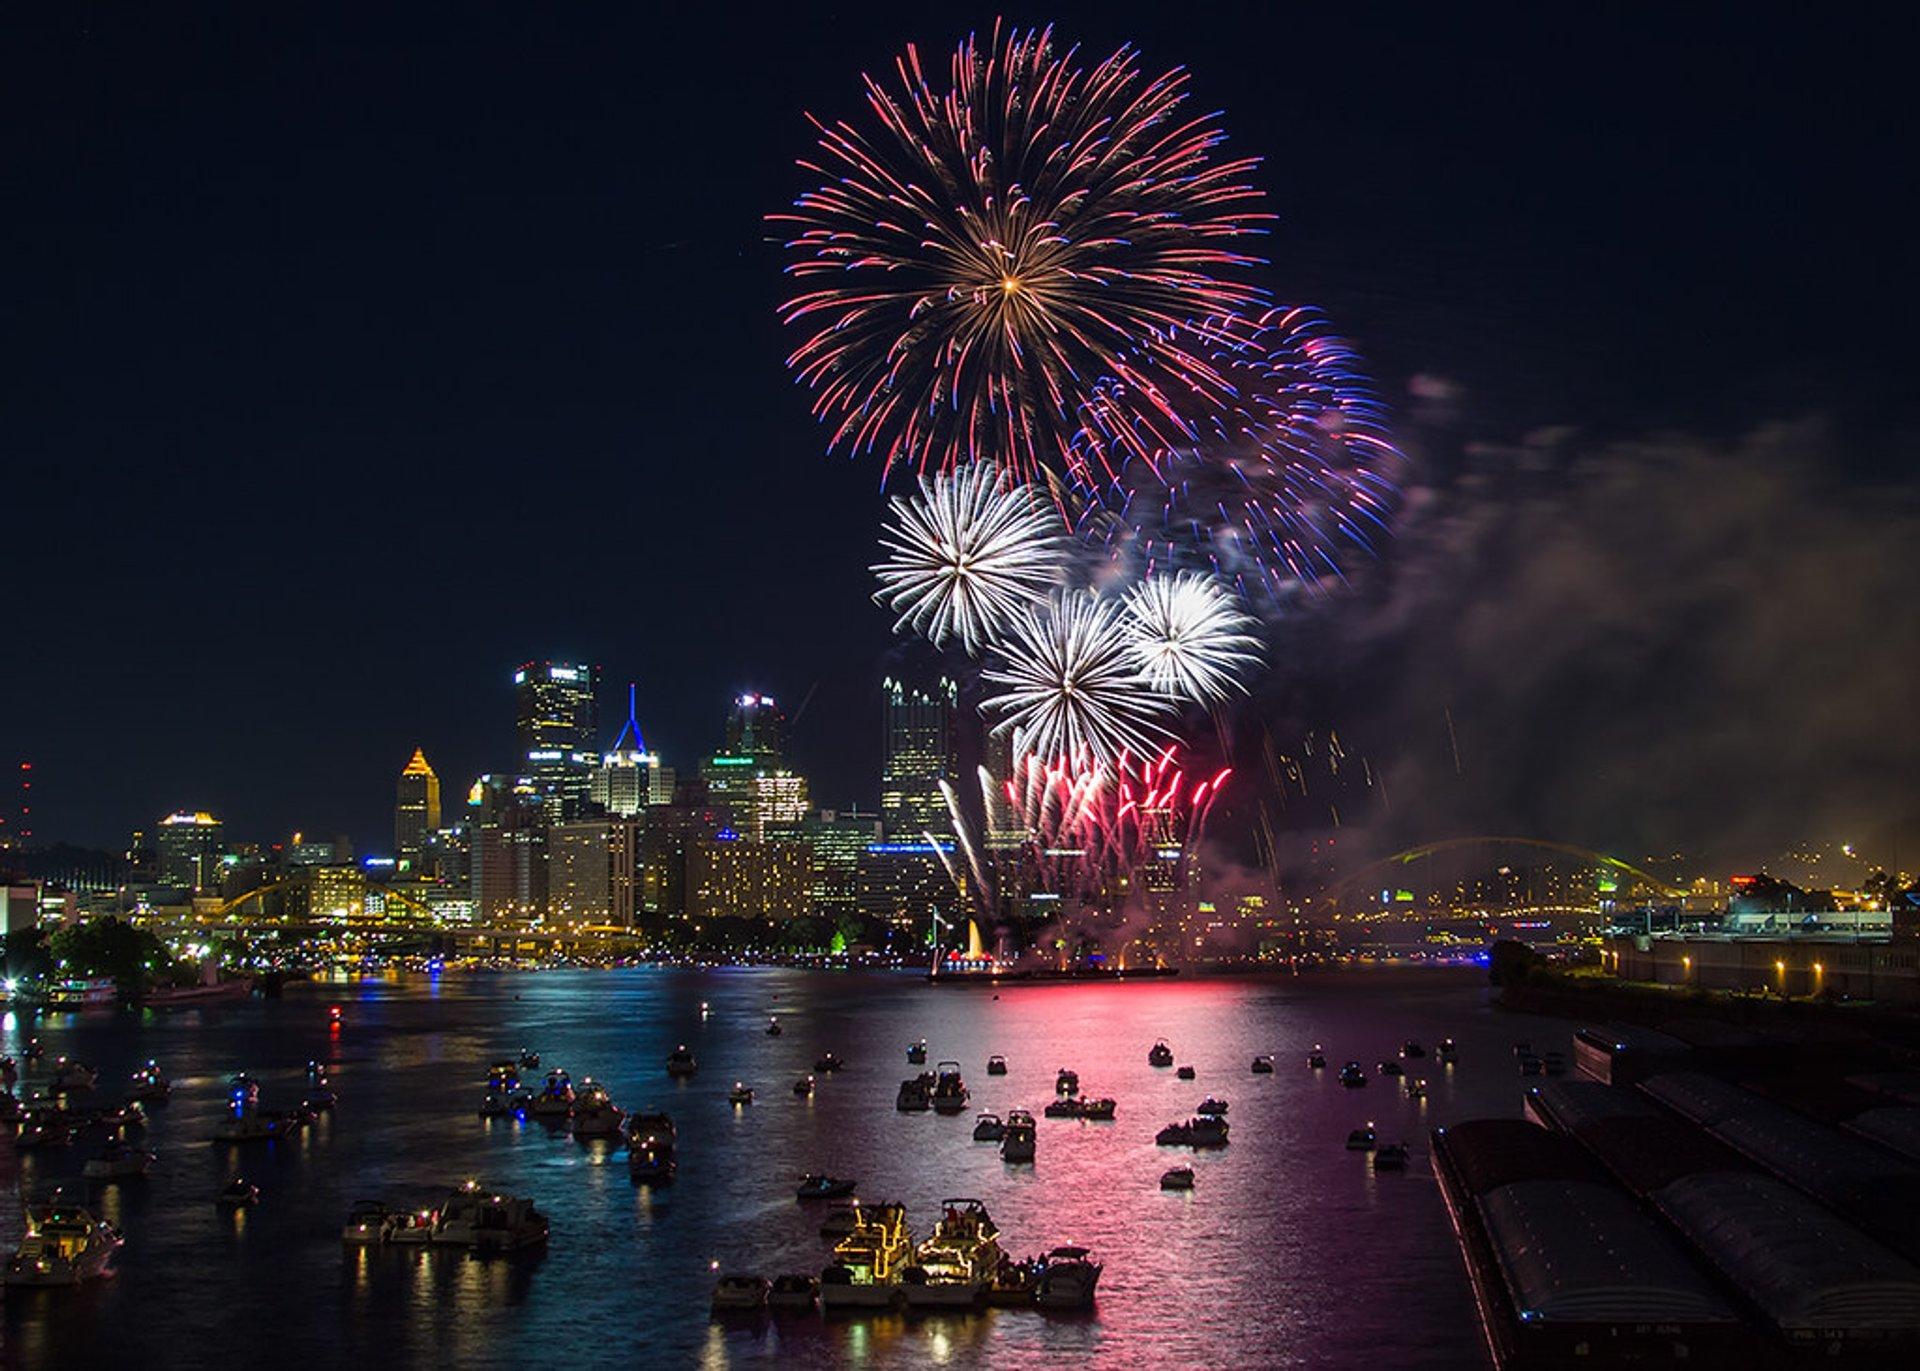 Pittsburgh 4th of July Celebration in Pittsburgh, PA 2020 - Best Time